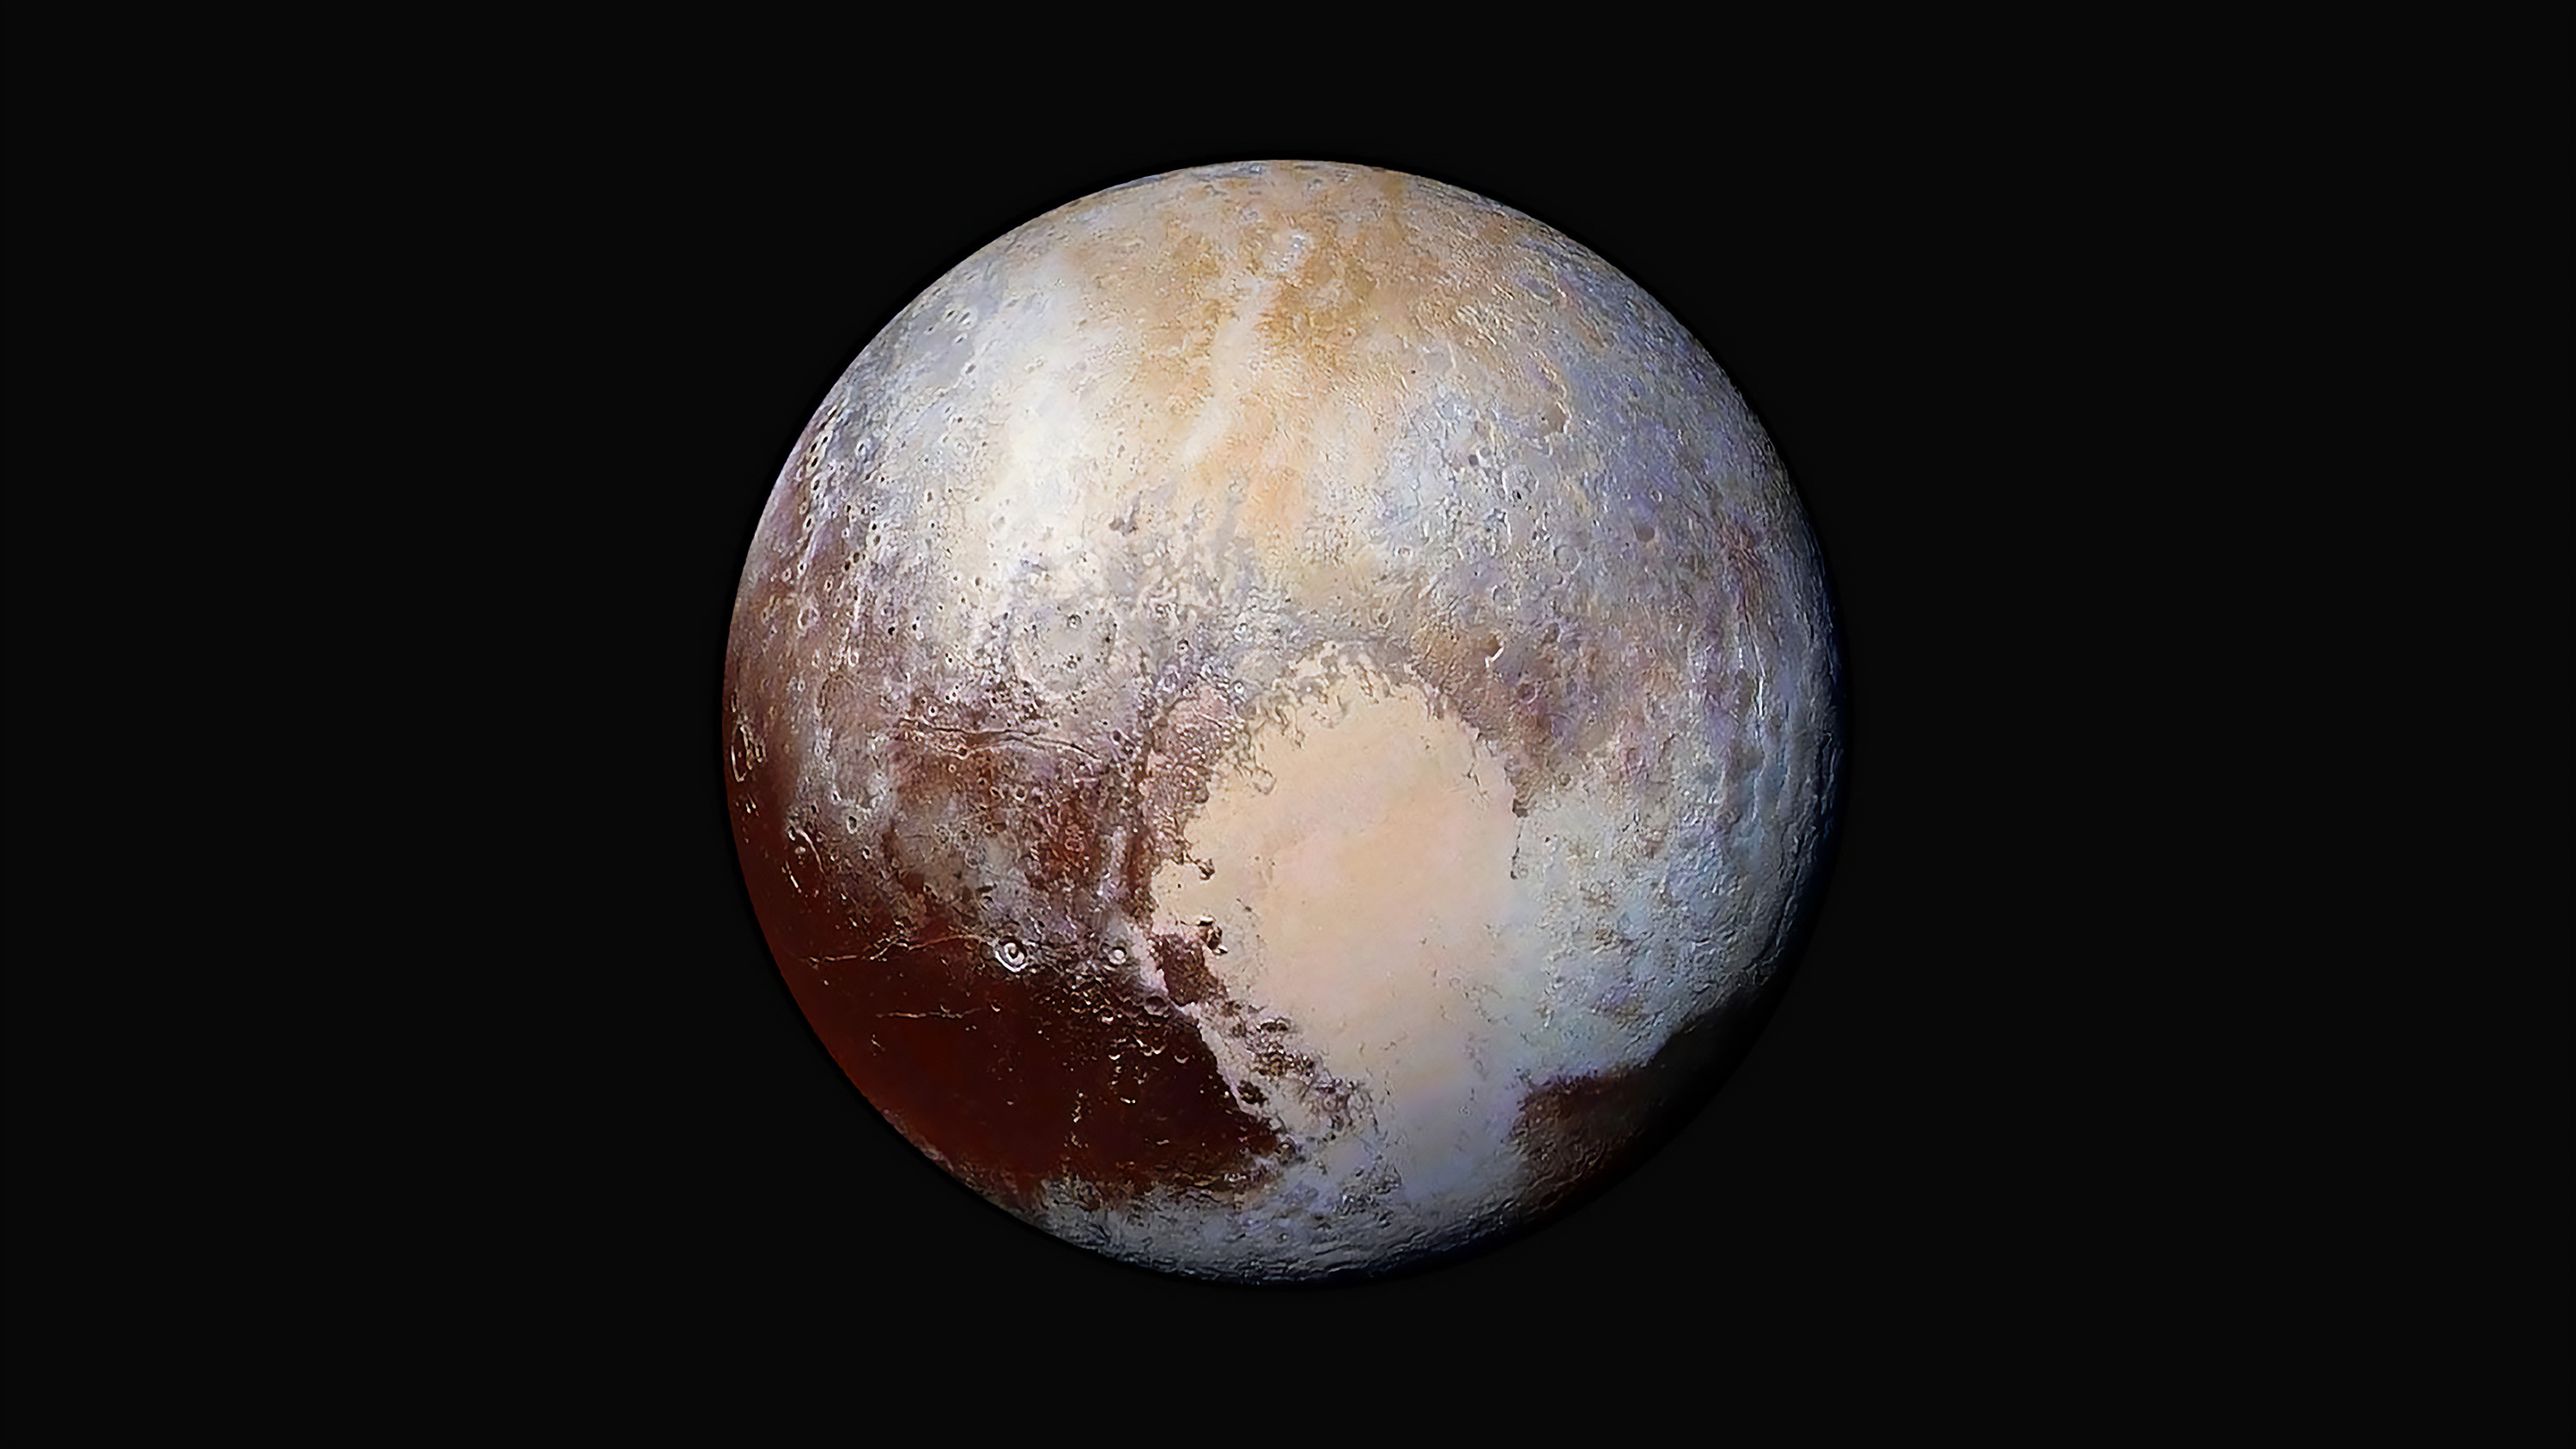 enhanced color global view of Pluto